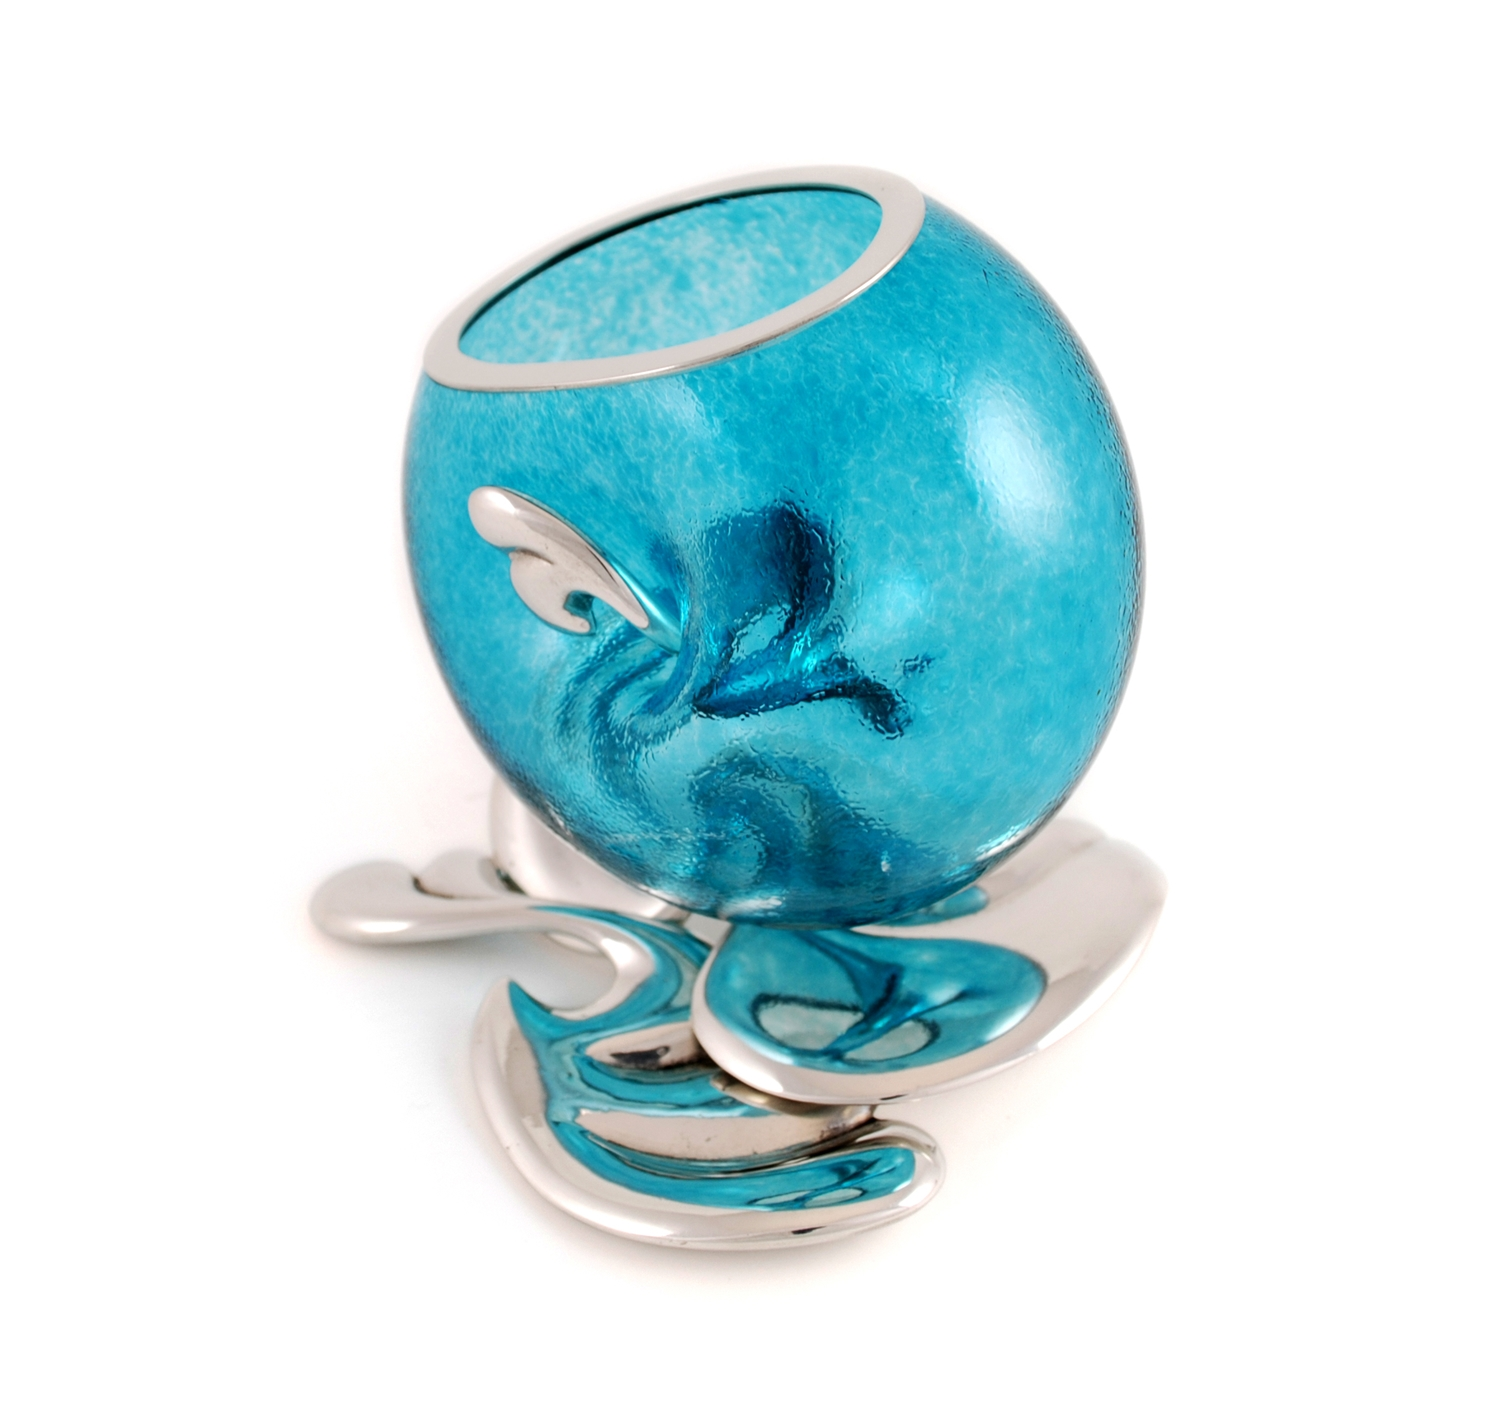 Turquoise Glass by Fleur Grenier